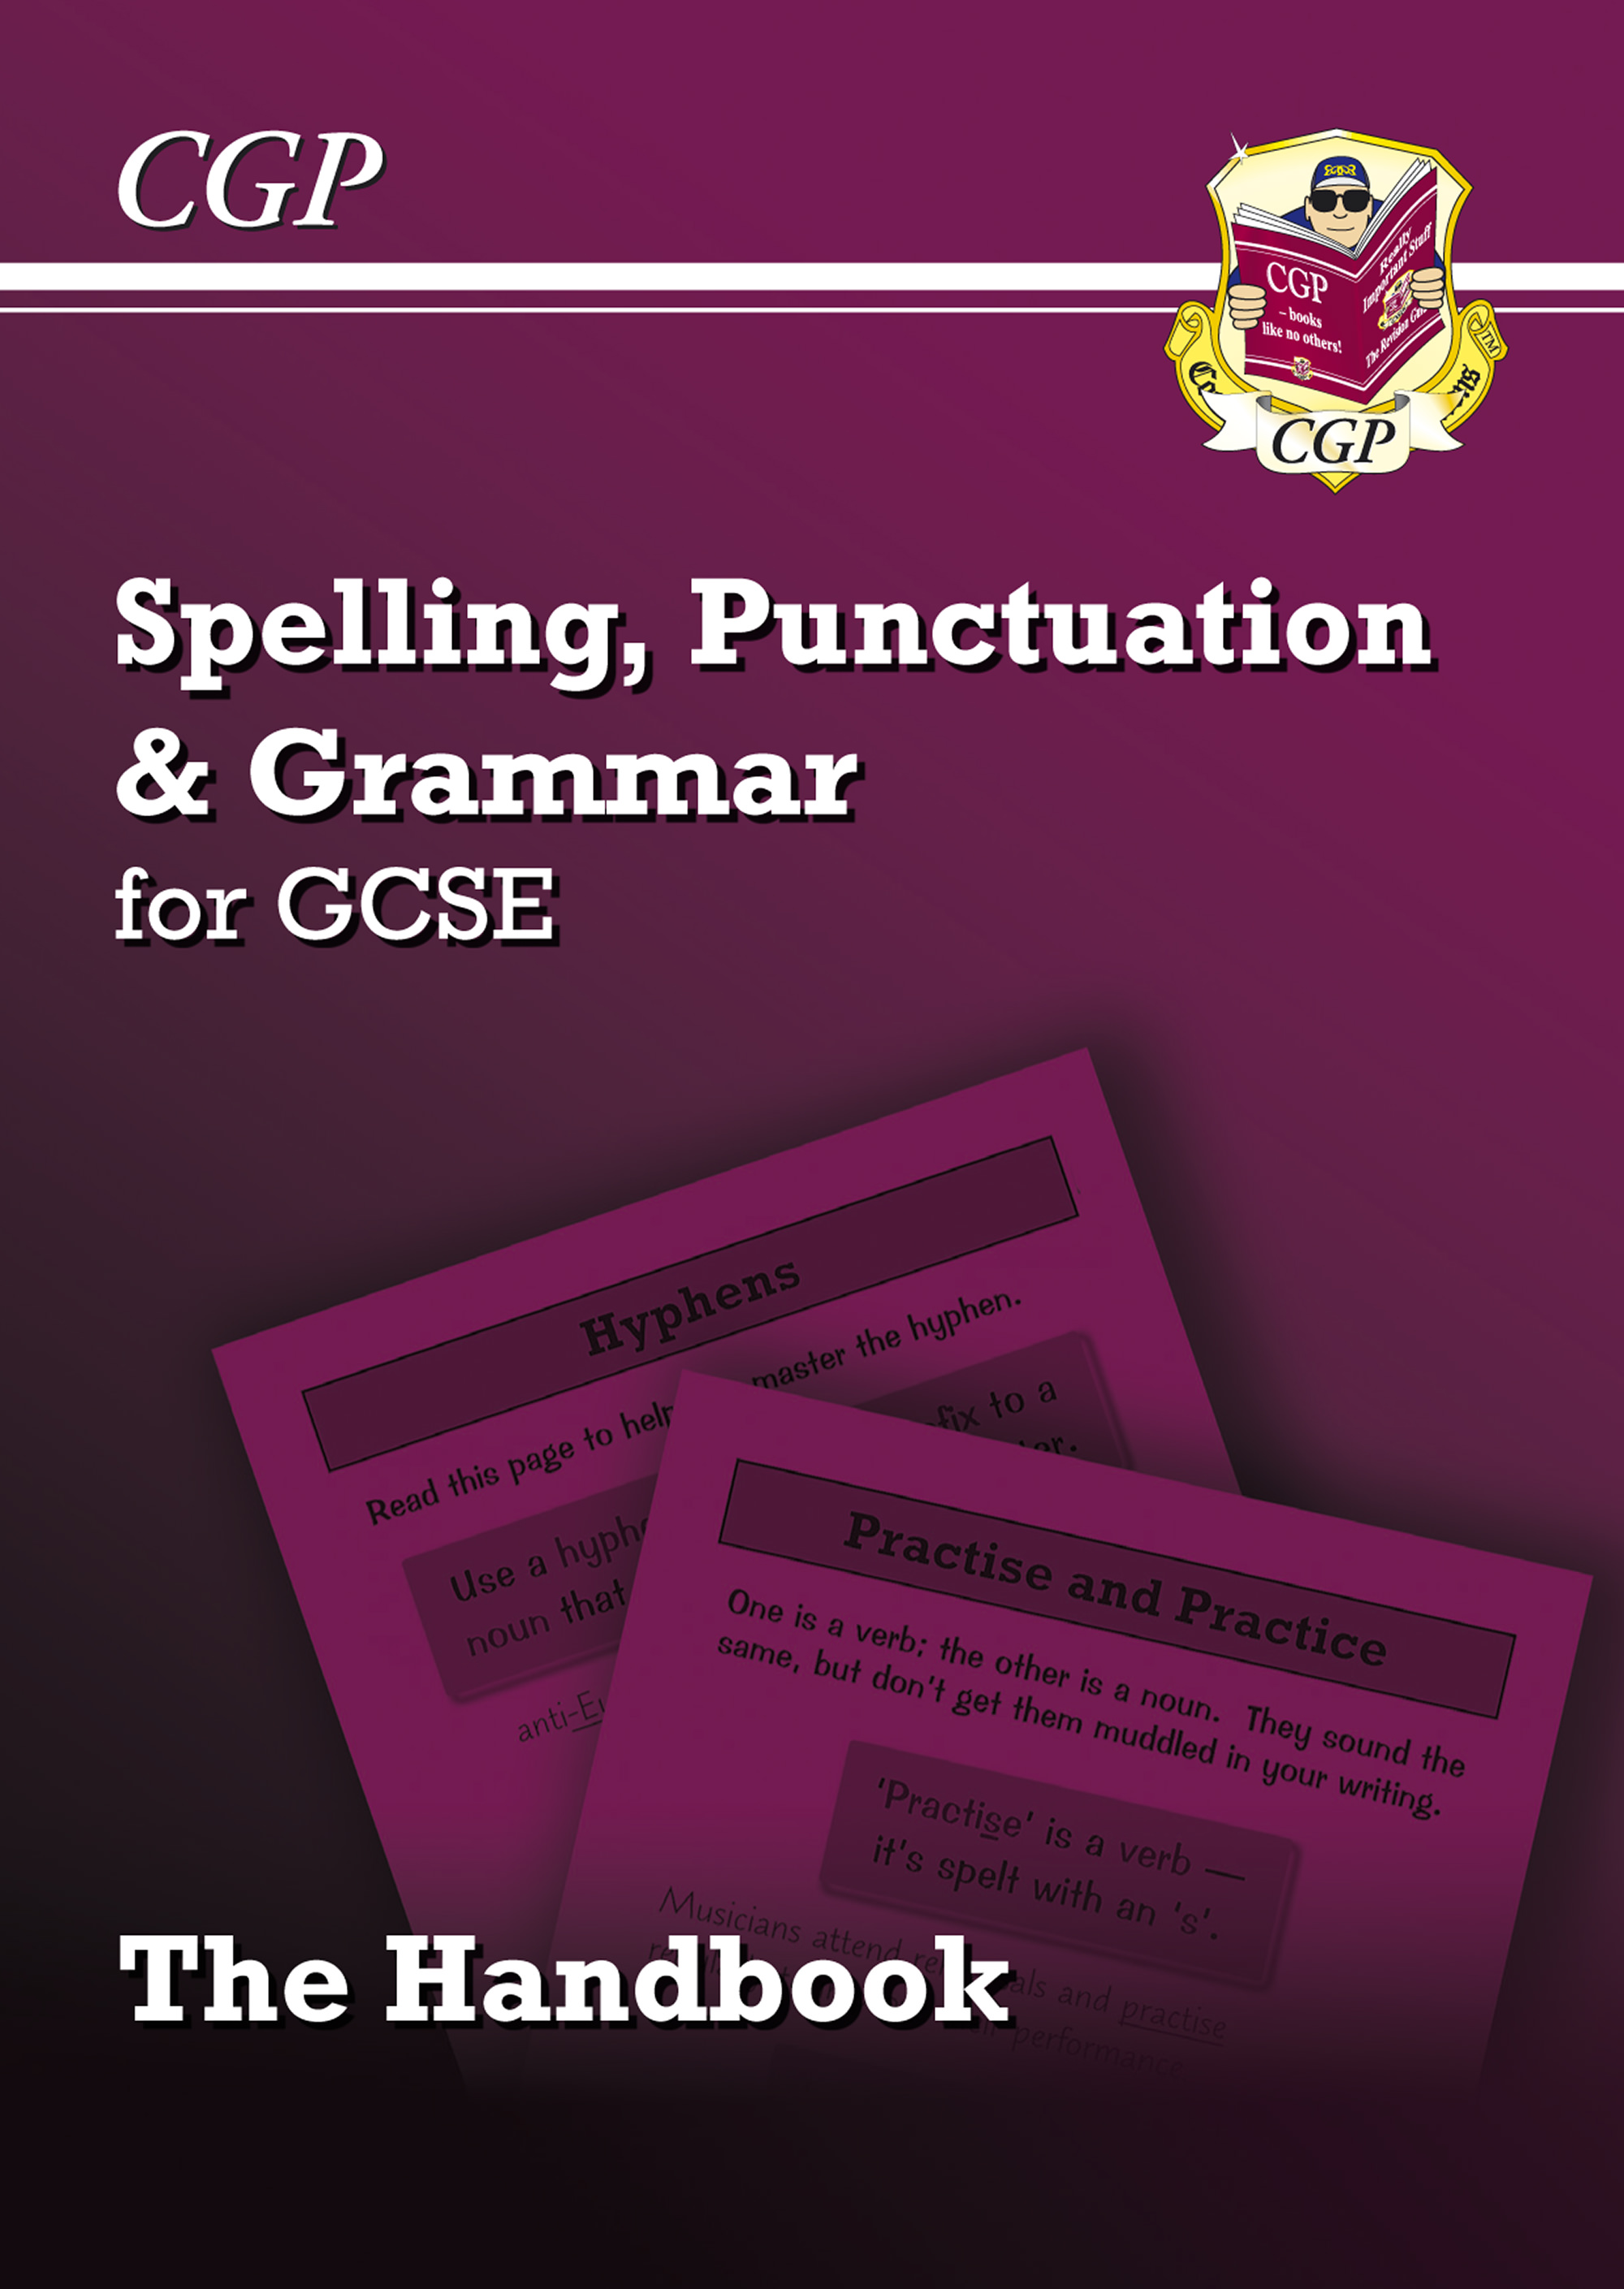 YETI41U - Spelling, Punctuation & Grammar for GCSE - Handbook